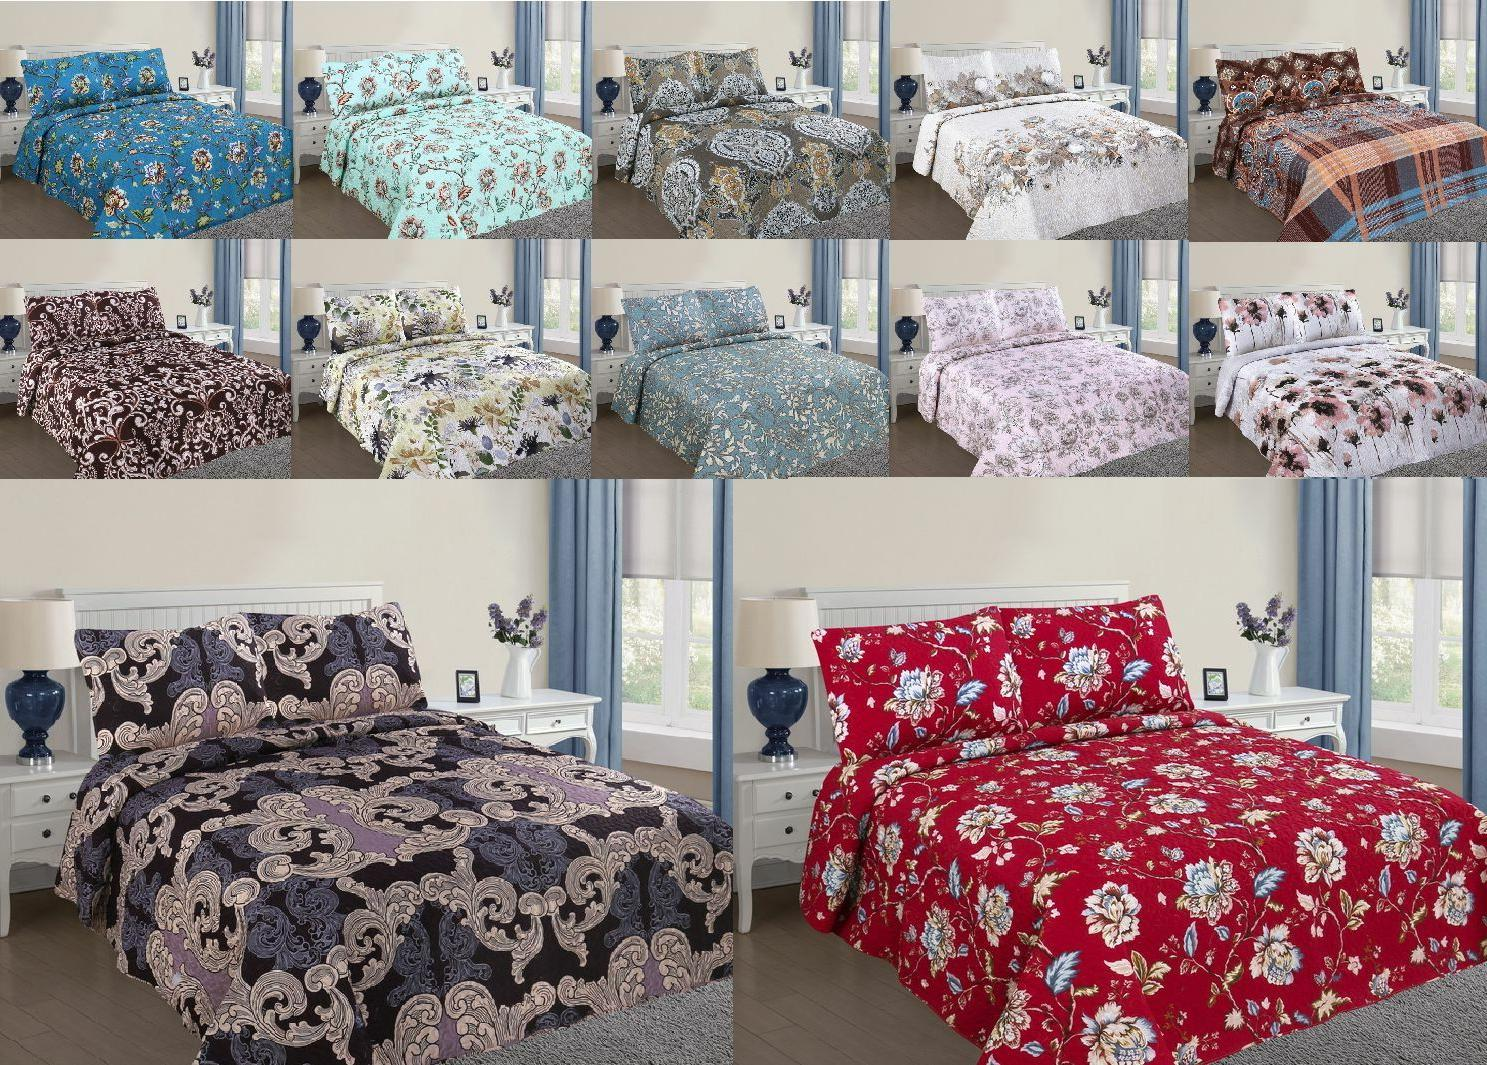 REVERSIBLE PRINTED BEDDING BEDSPREAD CASES